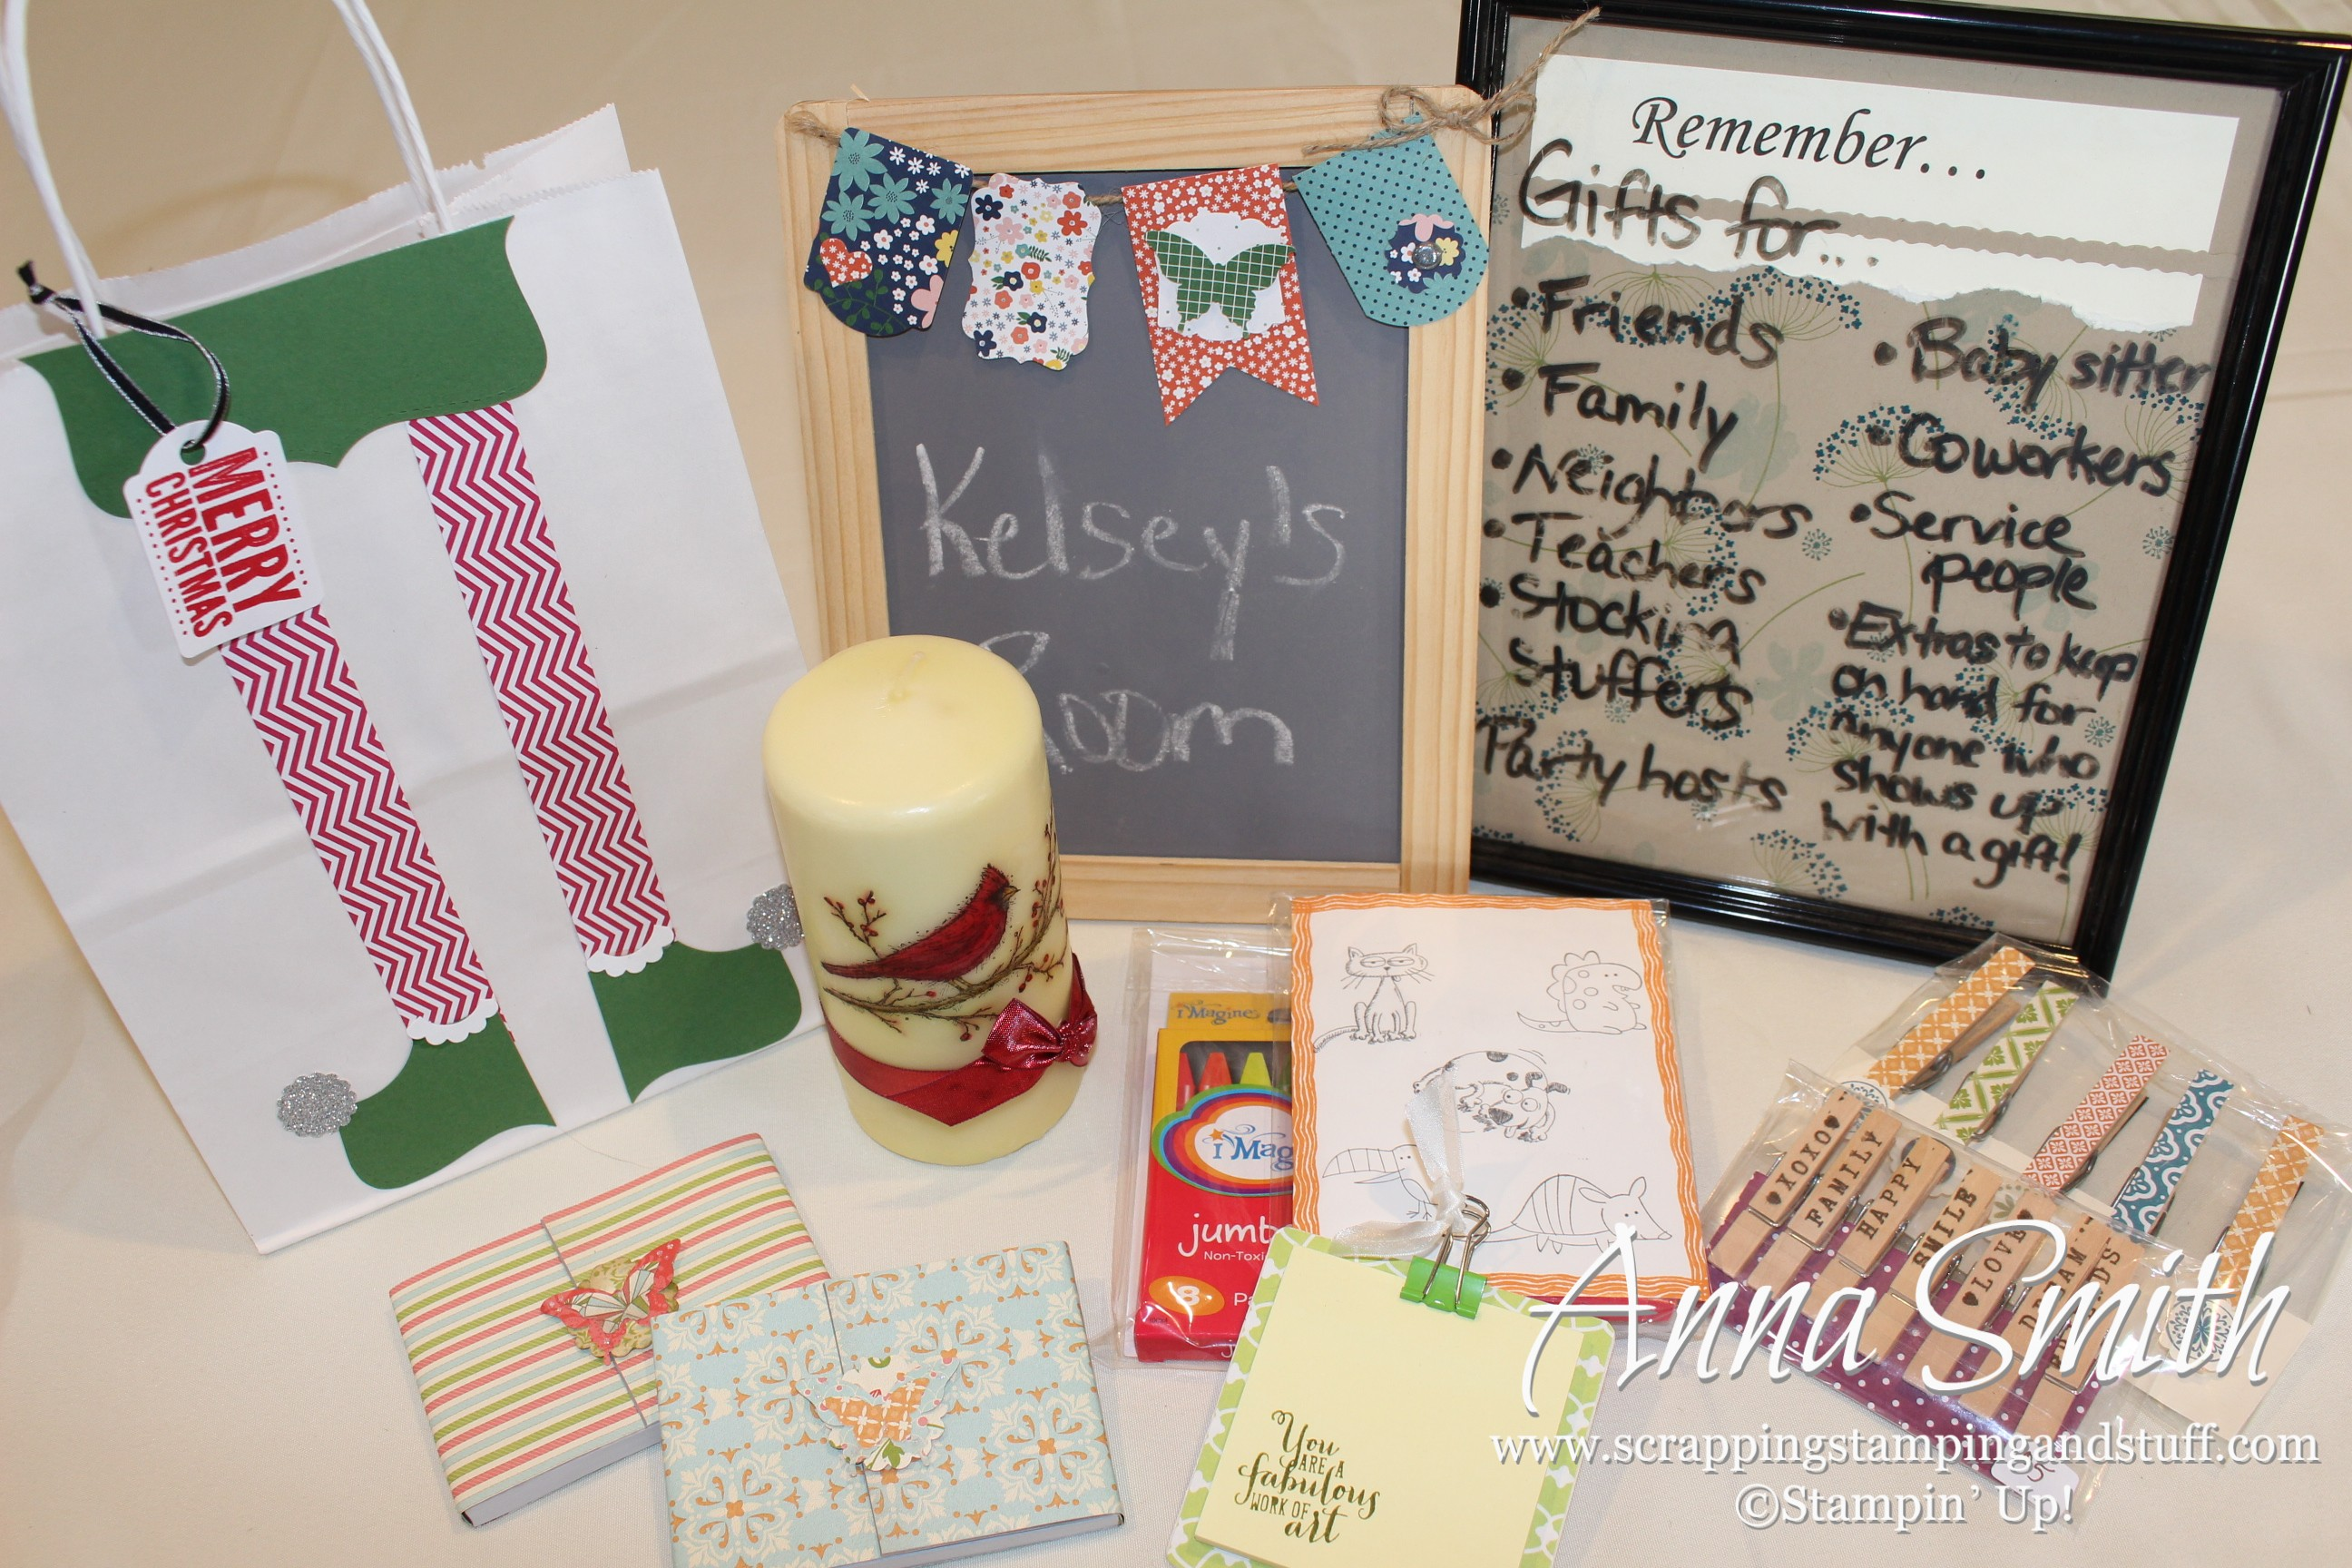 black friday deals and my holiday open house scrapping stamping